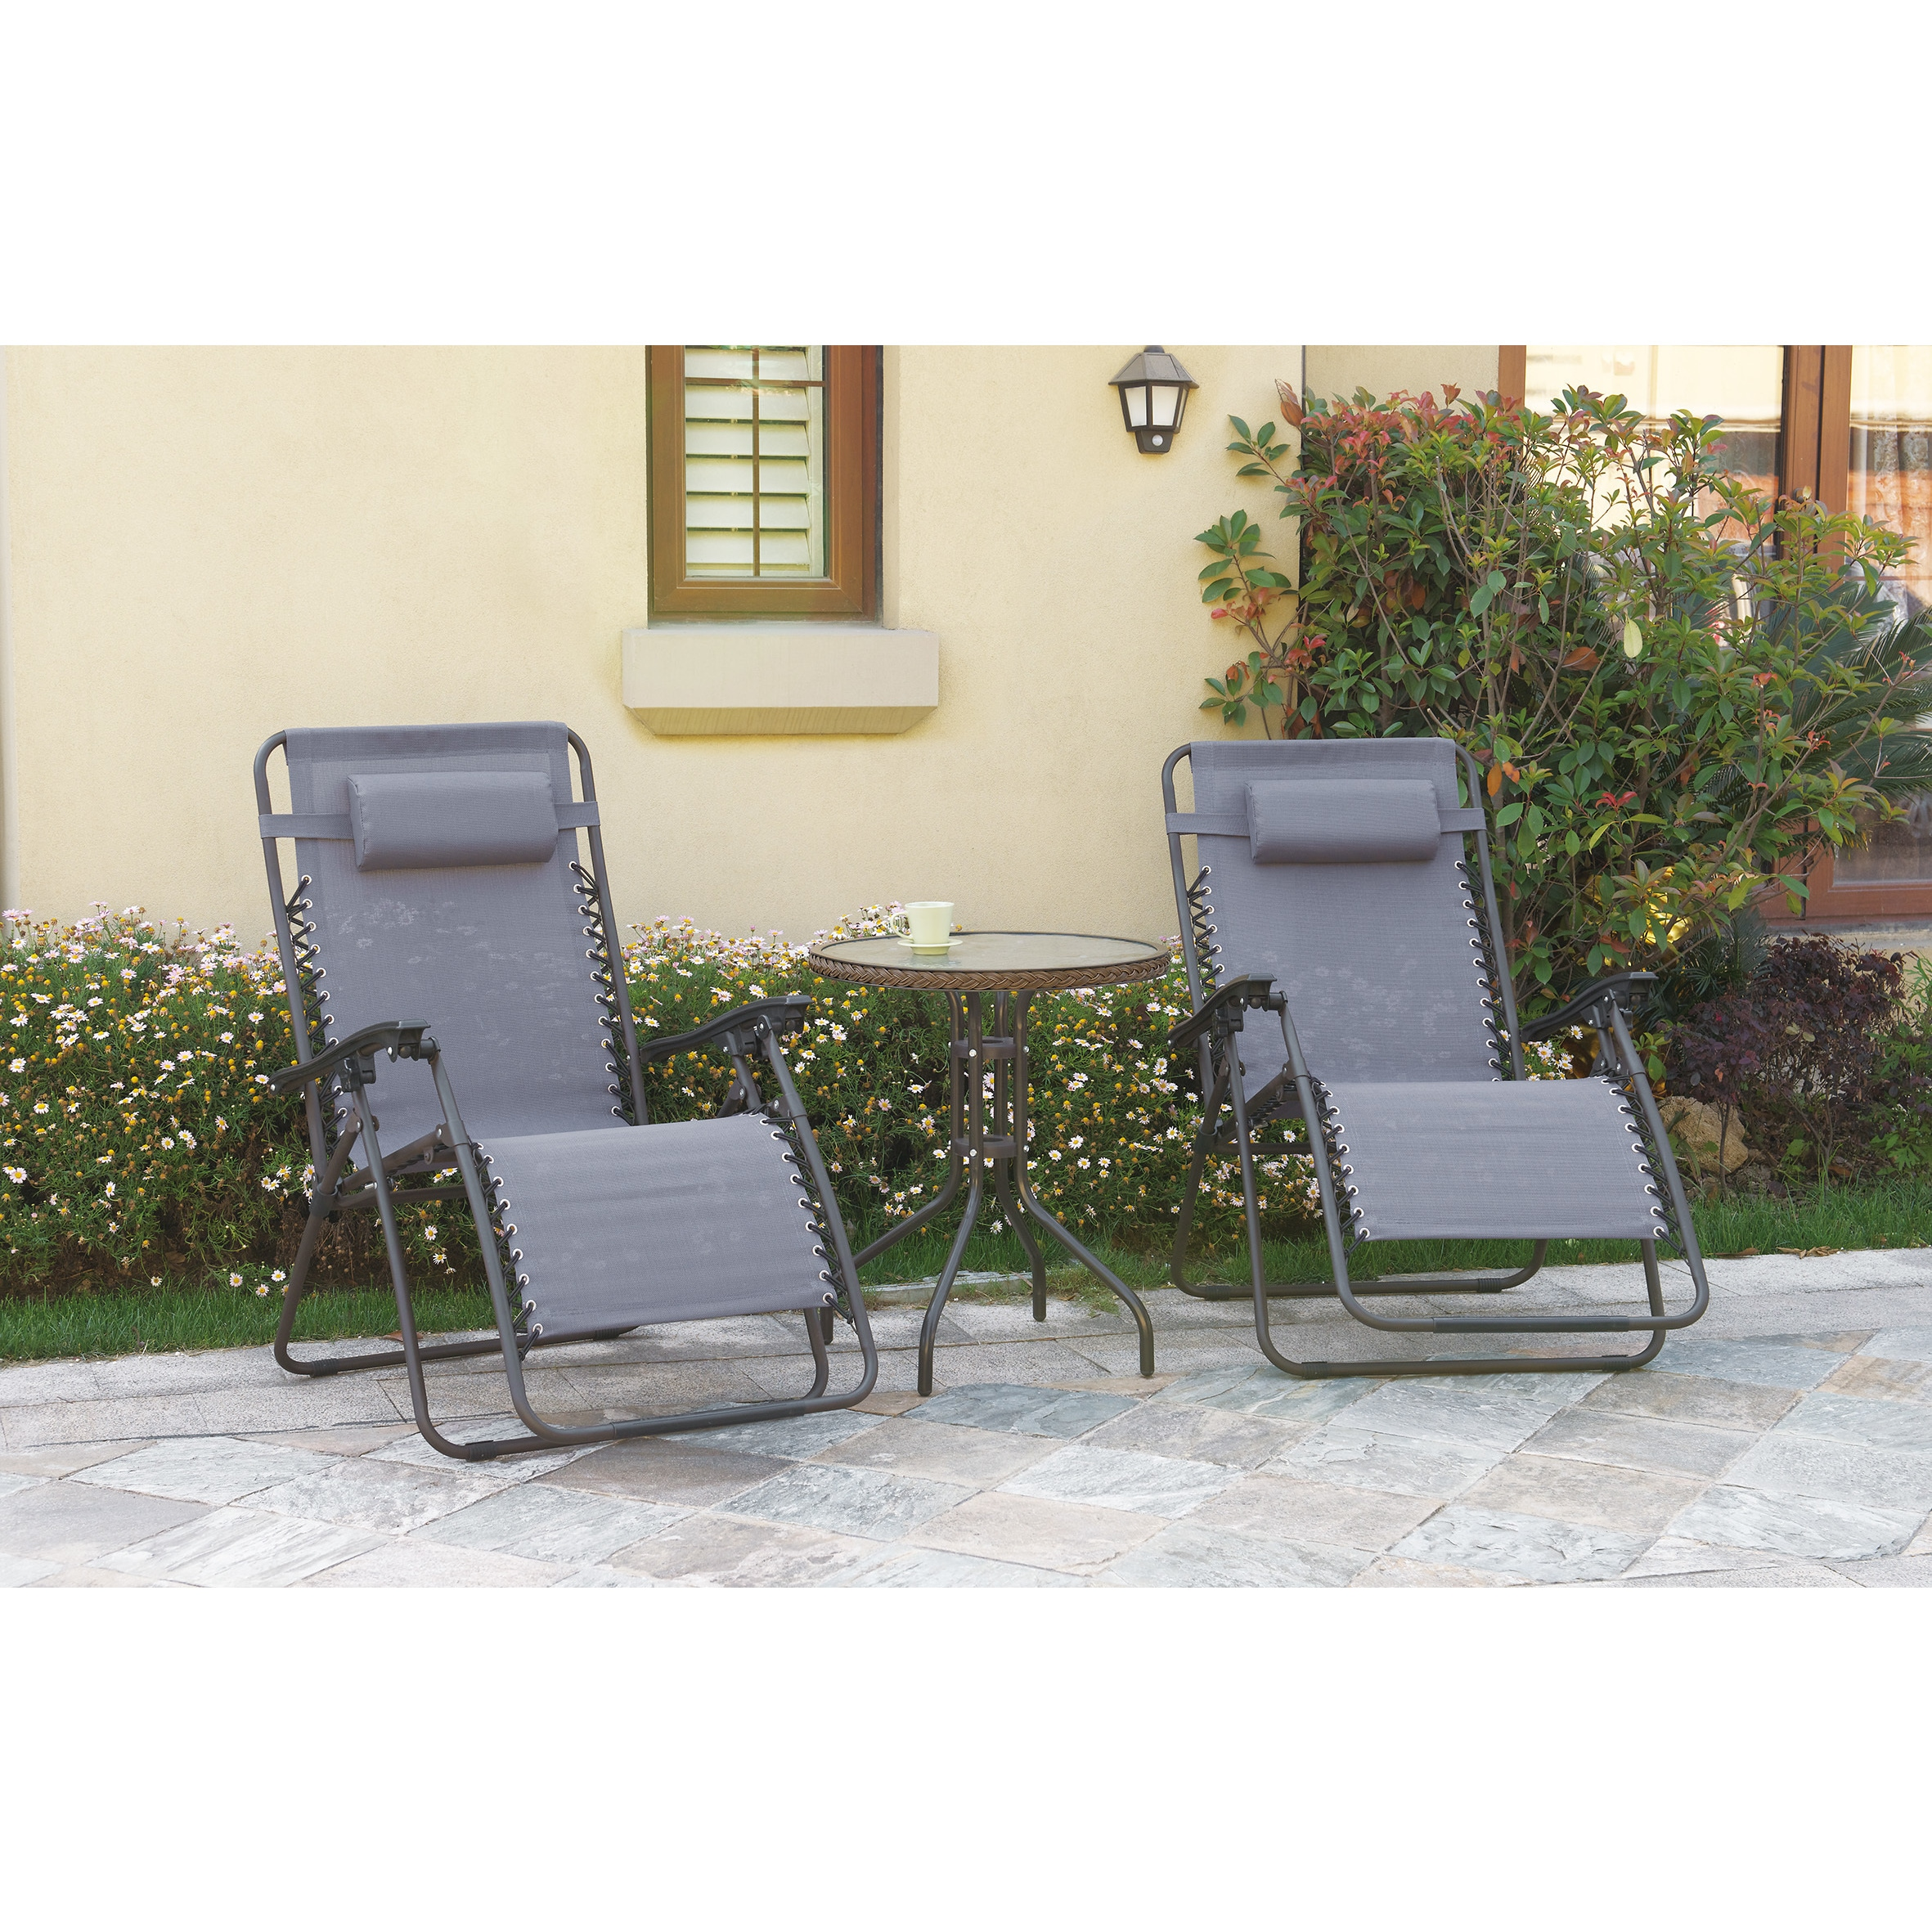 Poundex Lizkona Steel and Fabric All-weather Outdoor Fold...